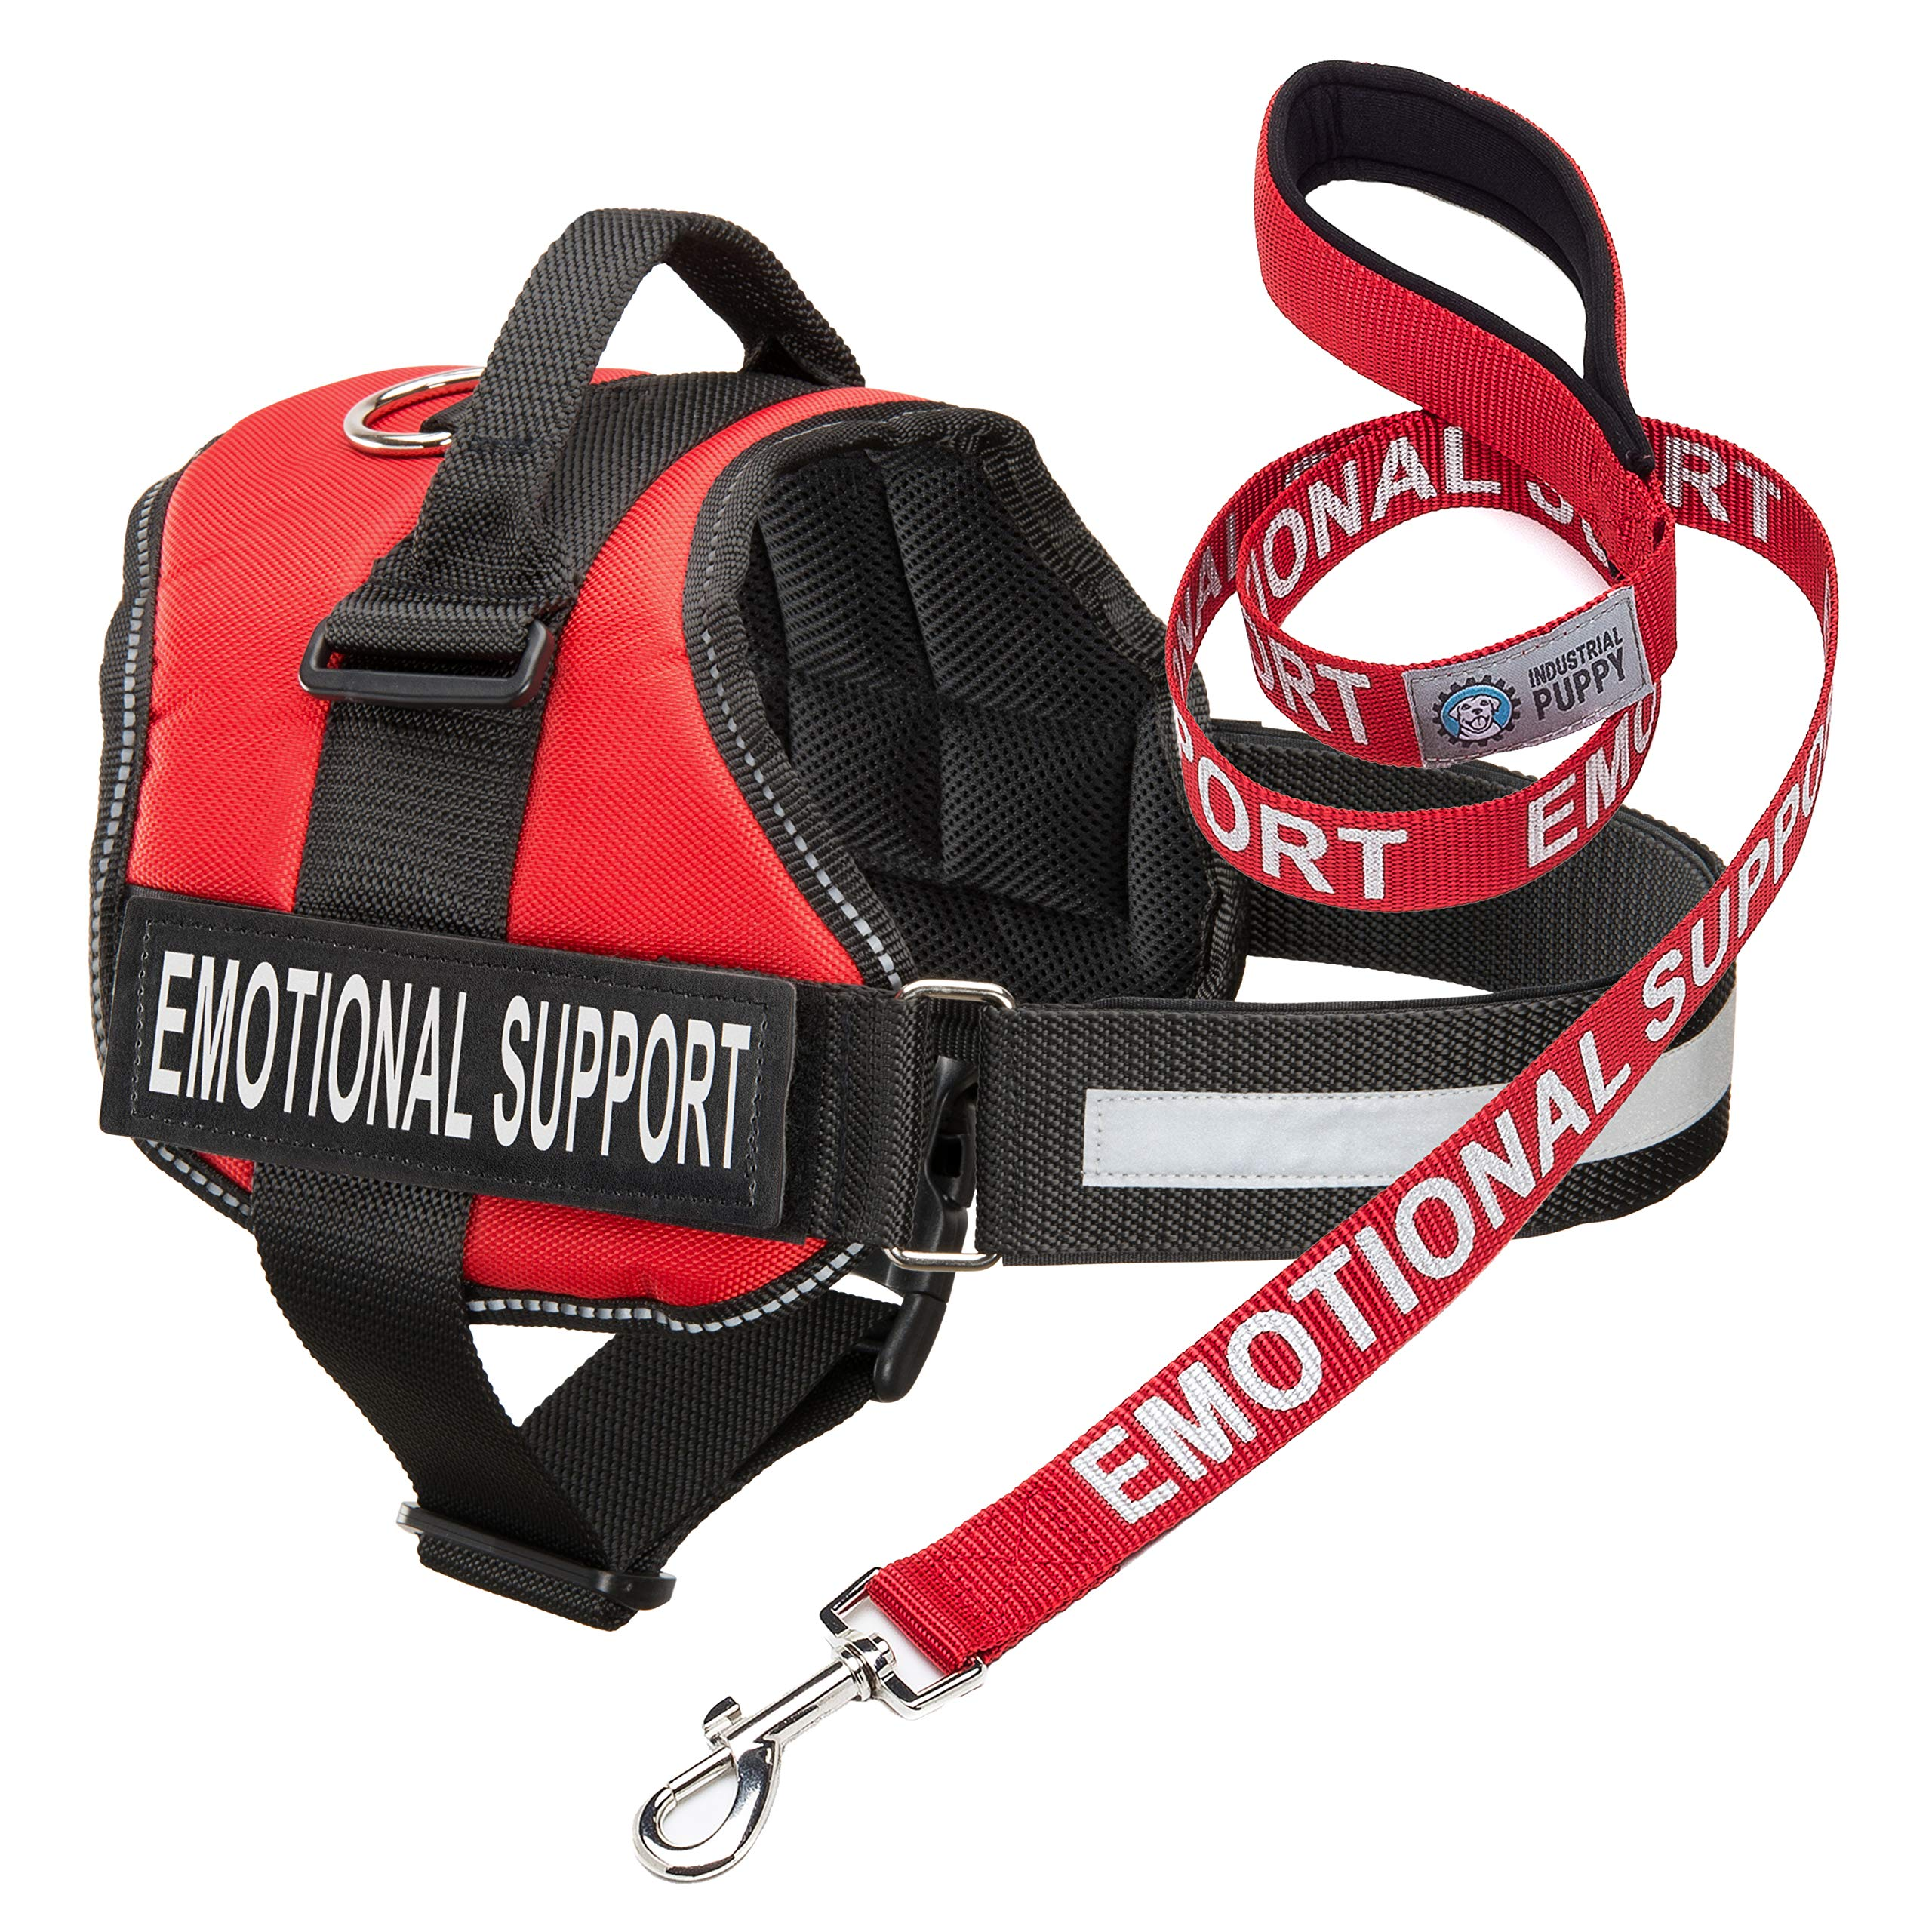 Emotional Support Dog Vest Harness With Reflective Straps, Interchangeable Patches, and Matching ESA Leash Set | ESA Dog Vest in 7 Adjustable Sizes | Heavy Duty Vests for Working or In Training Dogs